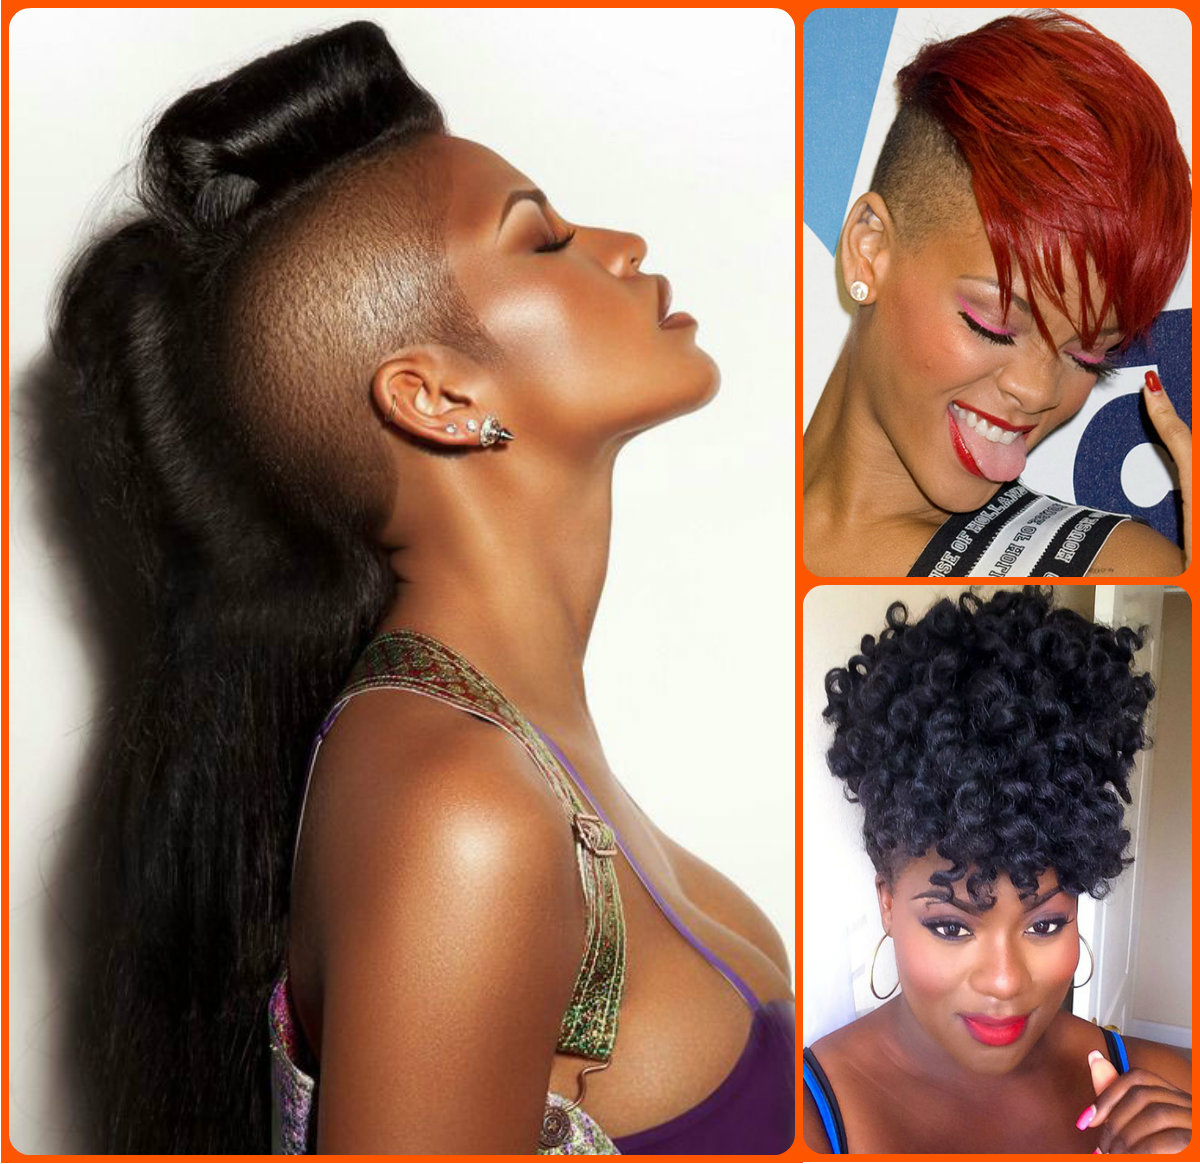 Jazzy Mohawk Hairstyles For Black Women (View 18 of 20)